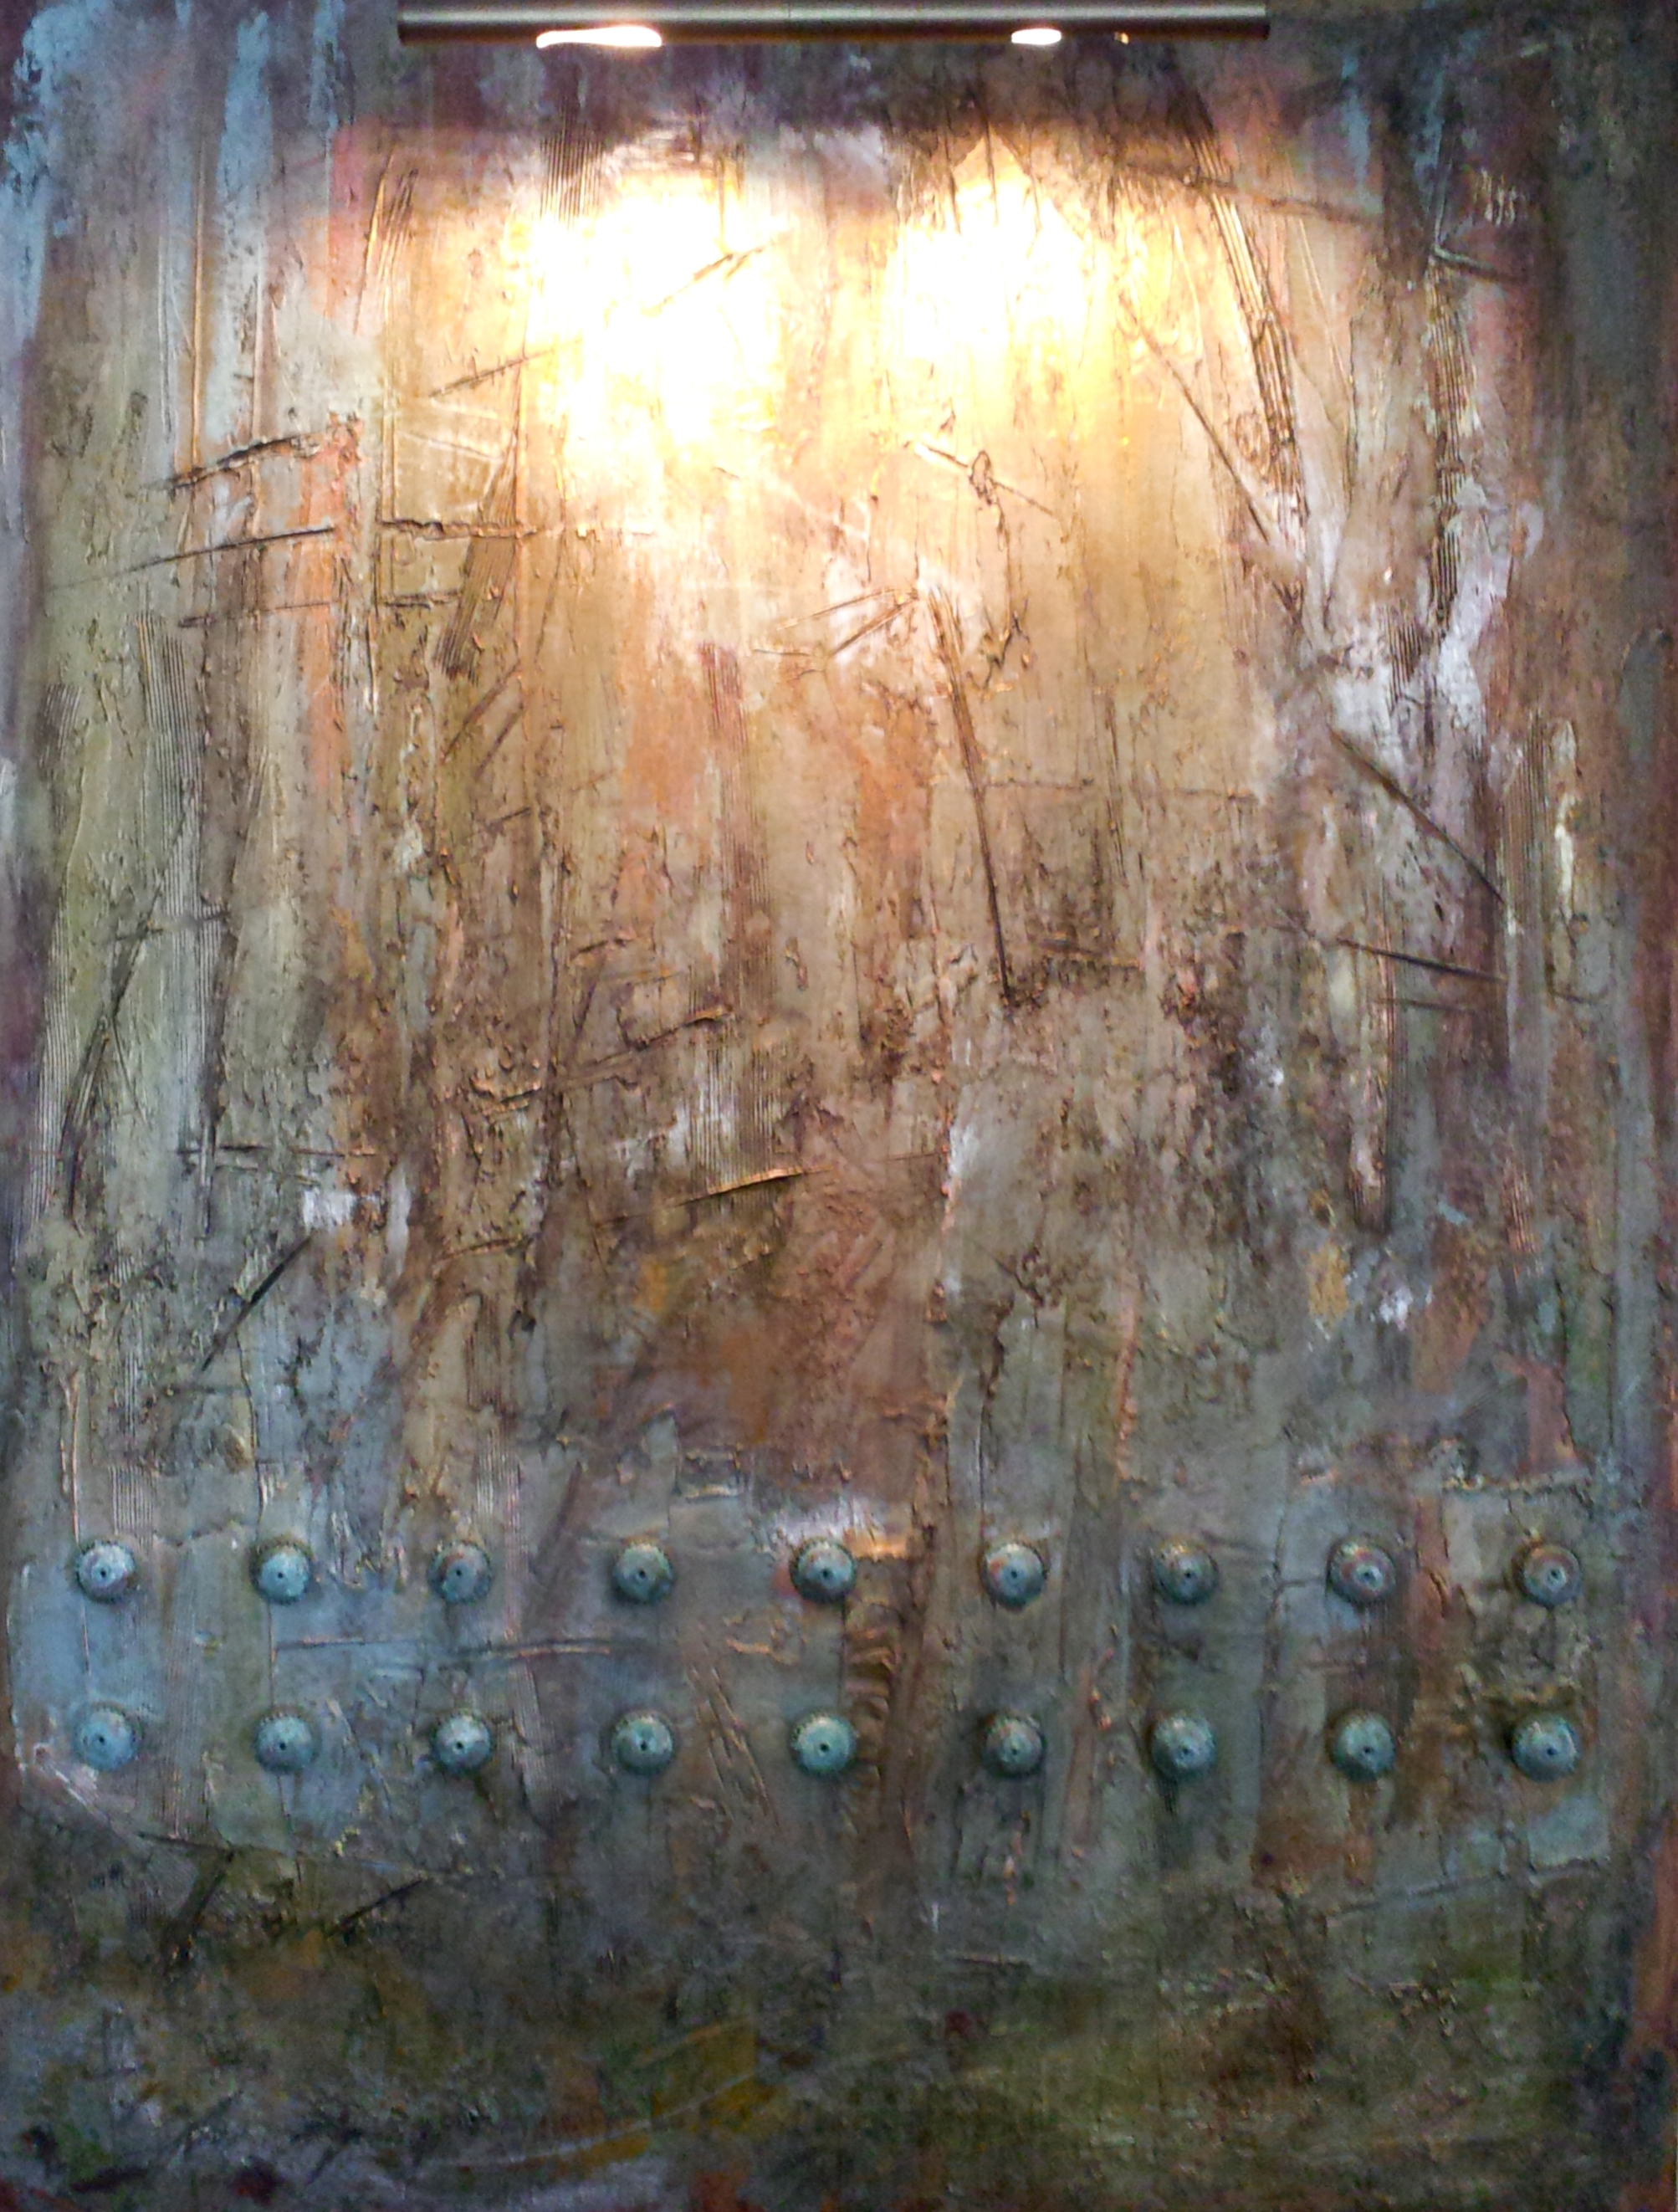 The Effects of Light  Mixed media and oxidized copper on canvas  48 x 36 x 1.5 inches  SOLD